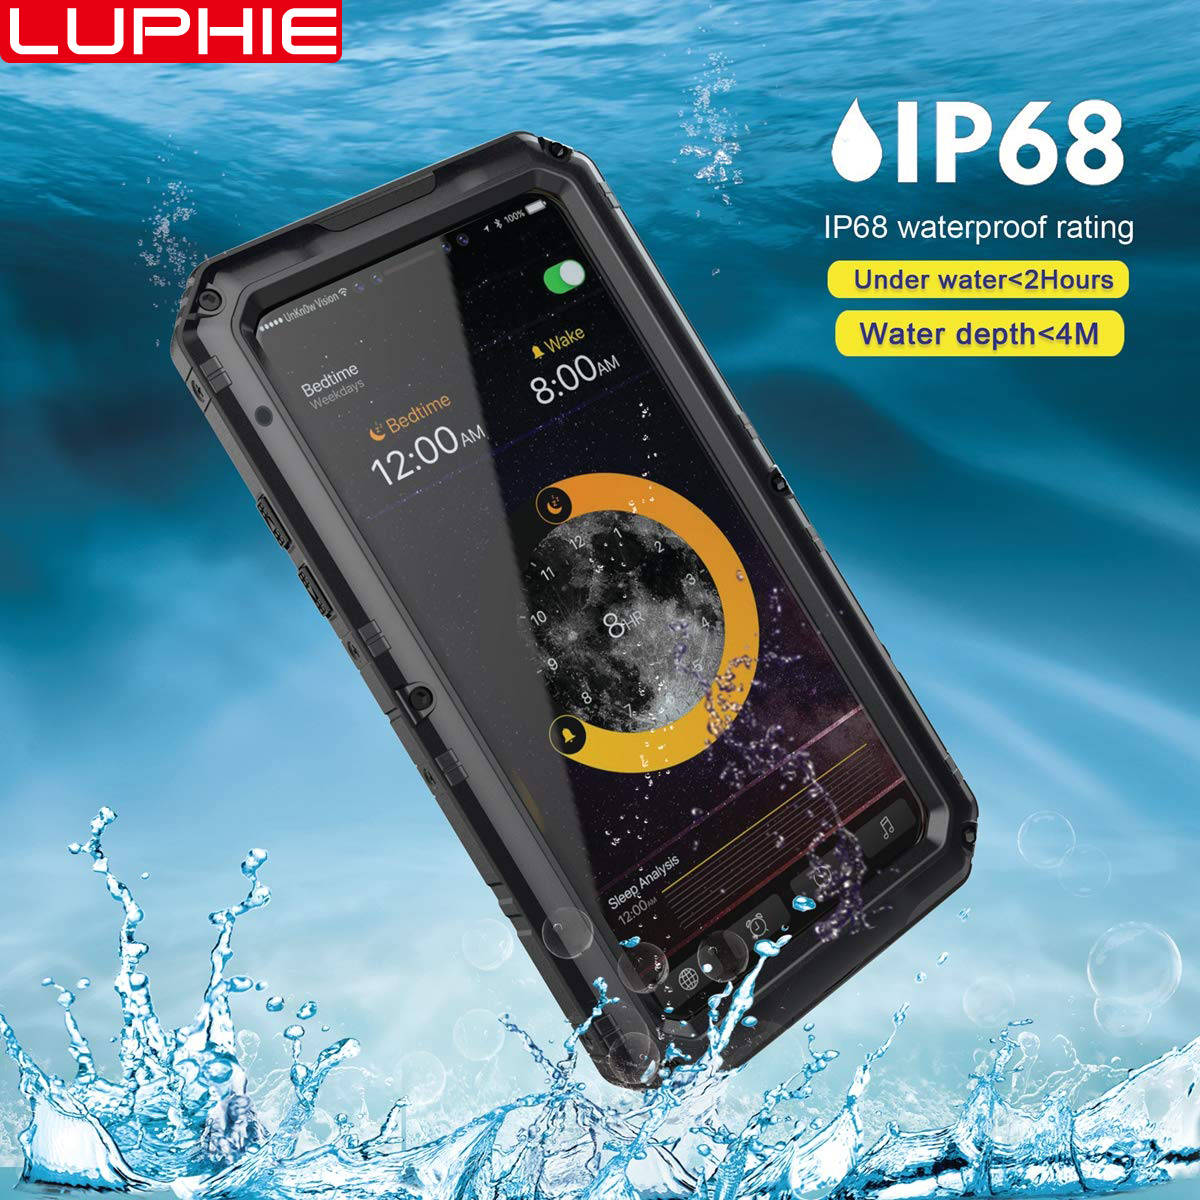 Shockproof Dustproof Waterproof Phone Cases for iPhone XR X 6 6S 7 8 Plus XS Max Luxury Armor Metal Aluminum Heavy Duty CoverShockproof Dustproof Waterproof Phone Cases for iPhone XR X 6 6S 7 8 Plus XS Max Luxury Armor Metal Aluminum Heavy Duty Cover